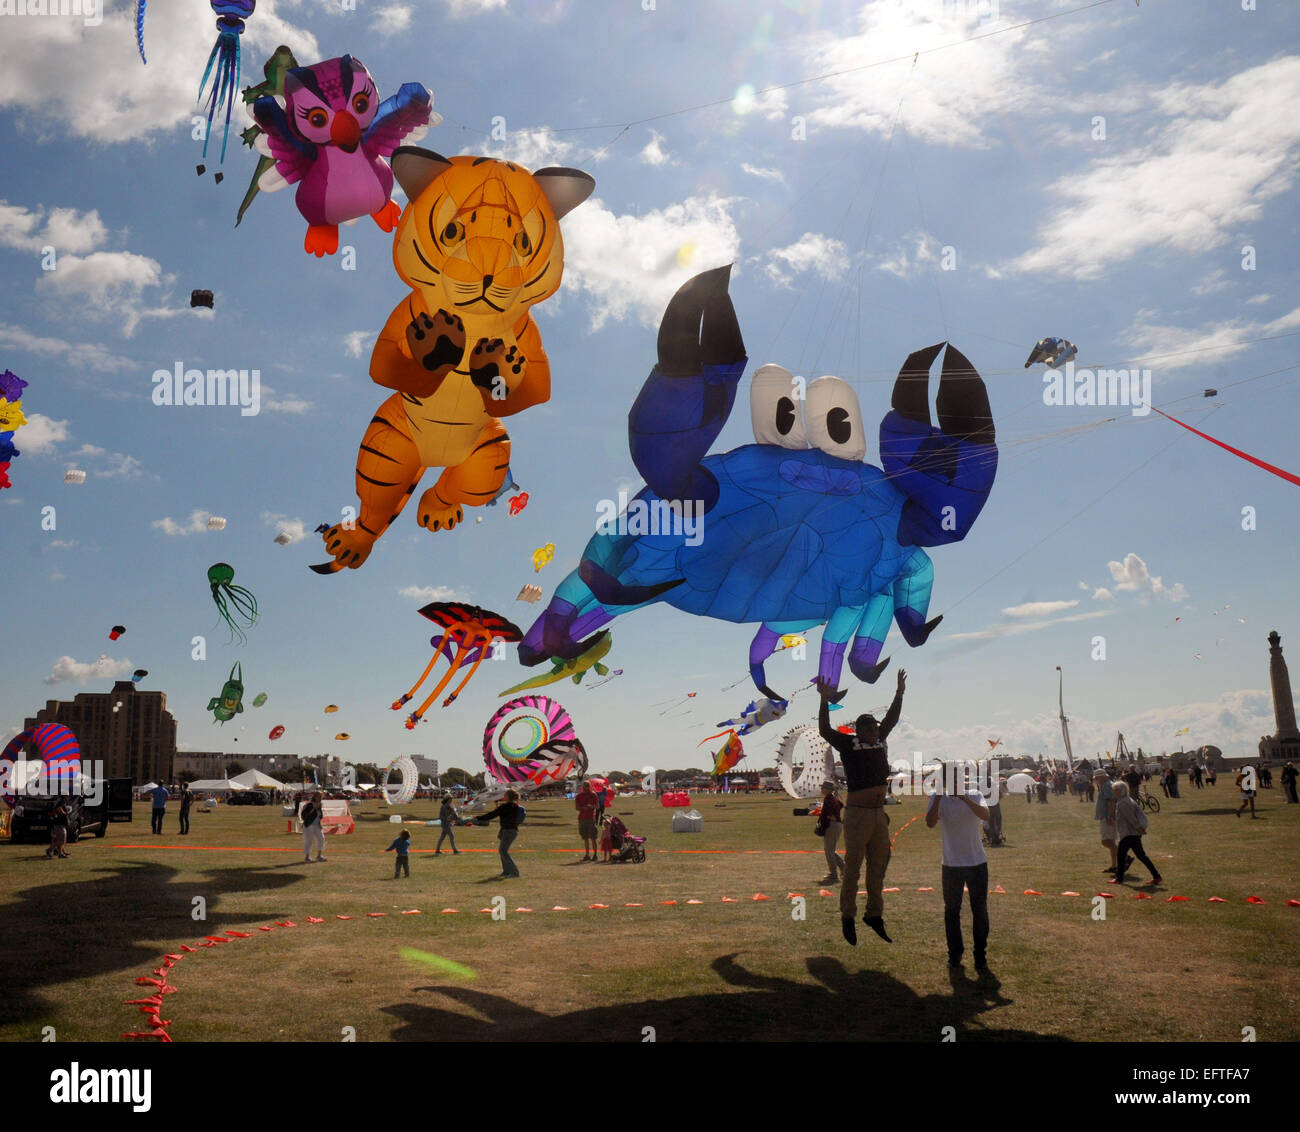 Kites of all shapes and sizes flying over the seafront at Southsea, Hants at the annual Kite Festival. Pic Mike Stock Photo